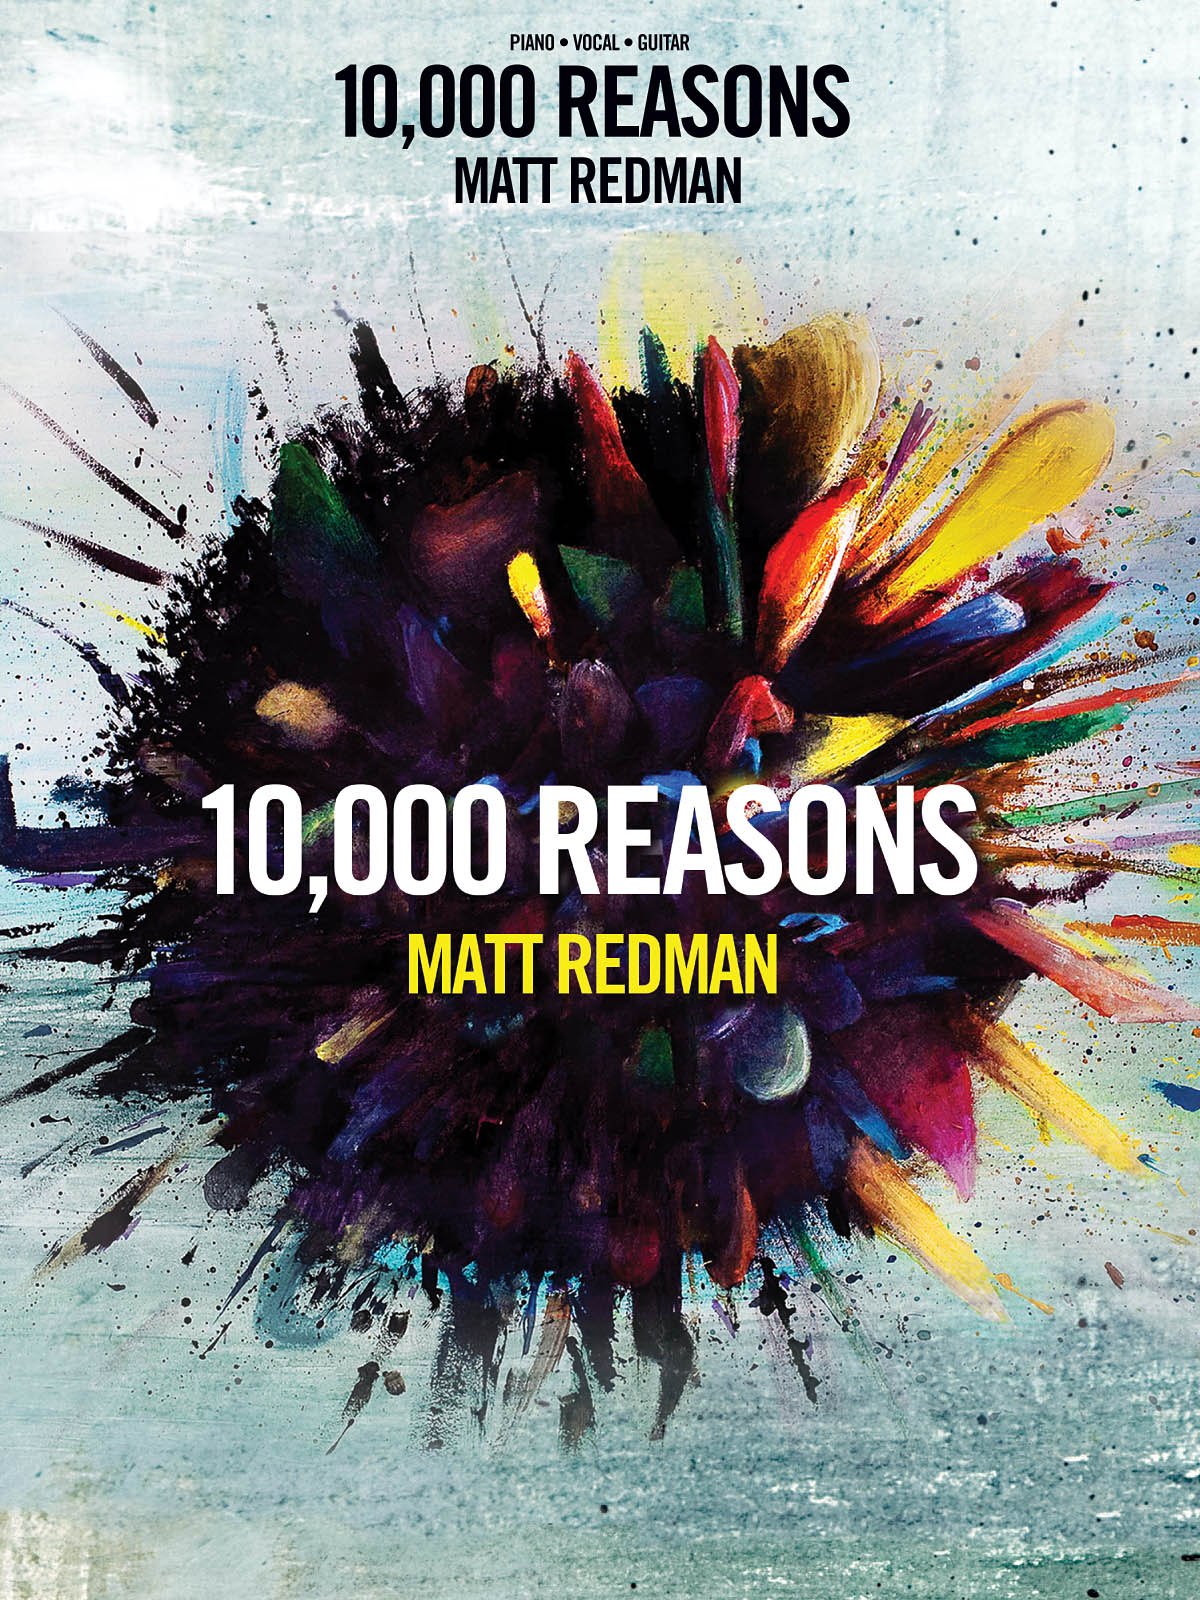 Matt Redman 10000 Reasons Piano Sheet Music Guitar Chords CCM Songs ...